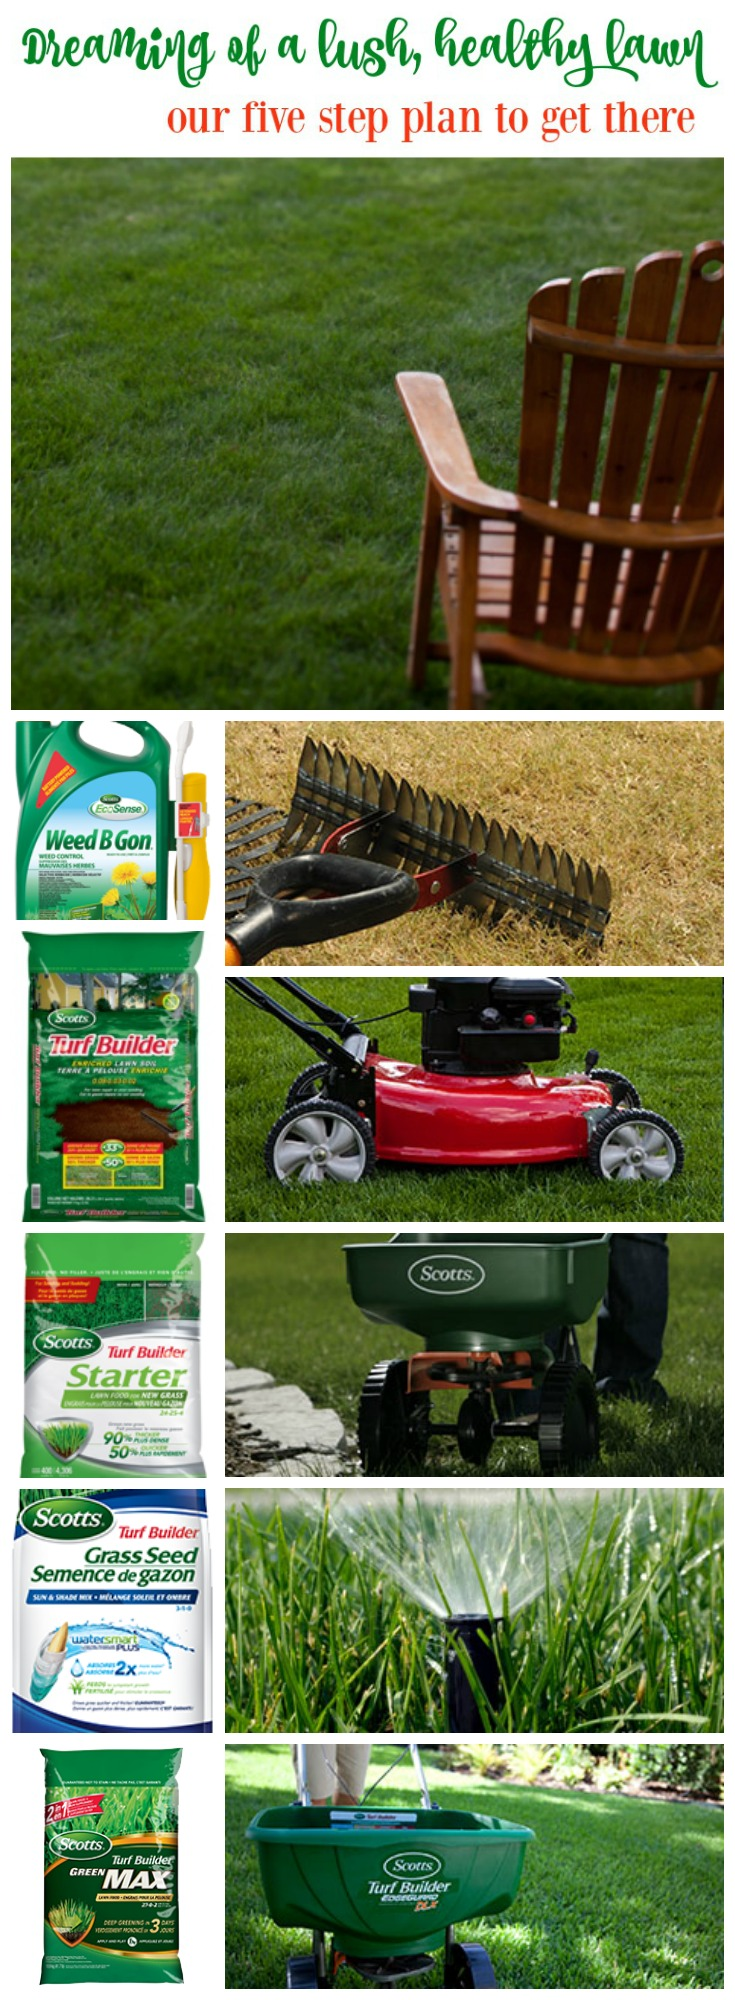 Clever Our Five Step Plan To Finally Get Rethis Before After Lawn Makeover Project Happy Housie Scotts Step 1 4 Scotts Step 1 Lawn Care Dreaming A Lush Healthy Lawn houzz-03 Scotts Step 1